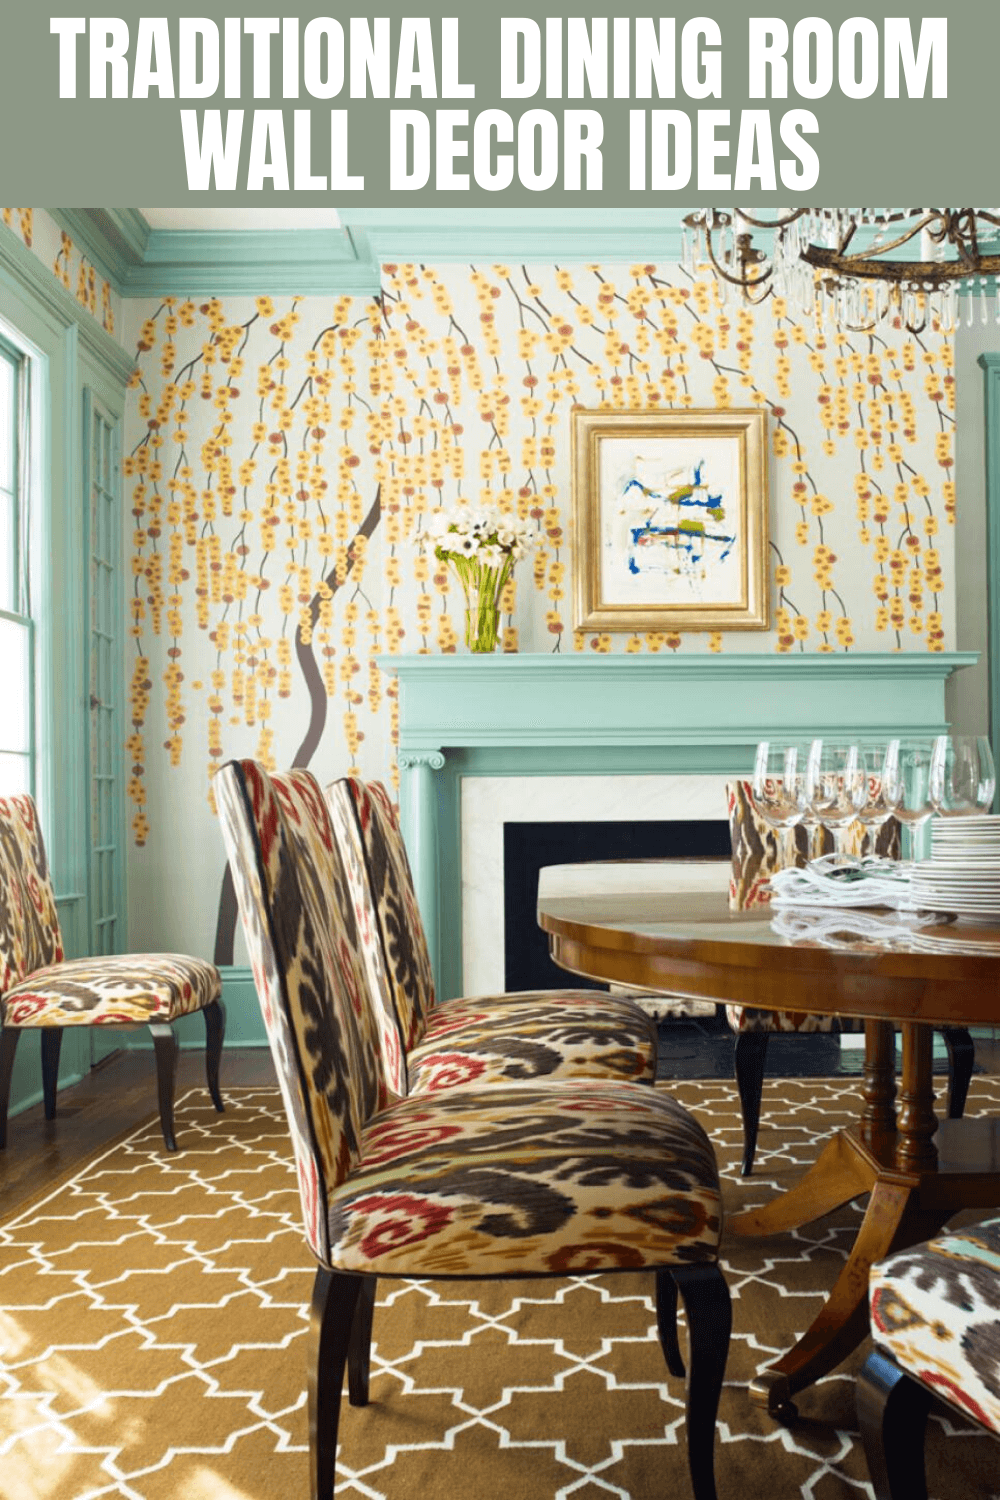 TRADITIONAL DINING ROOM WALL DECOR IDEAS